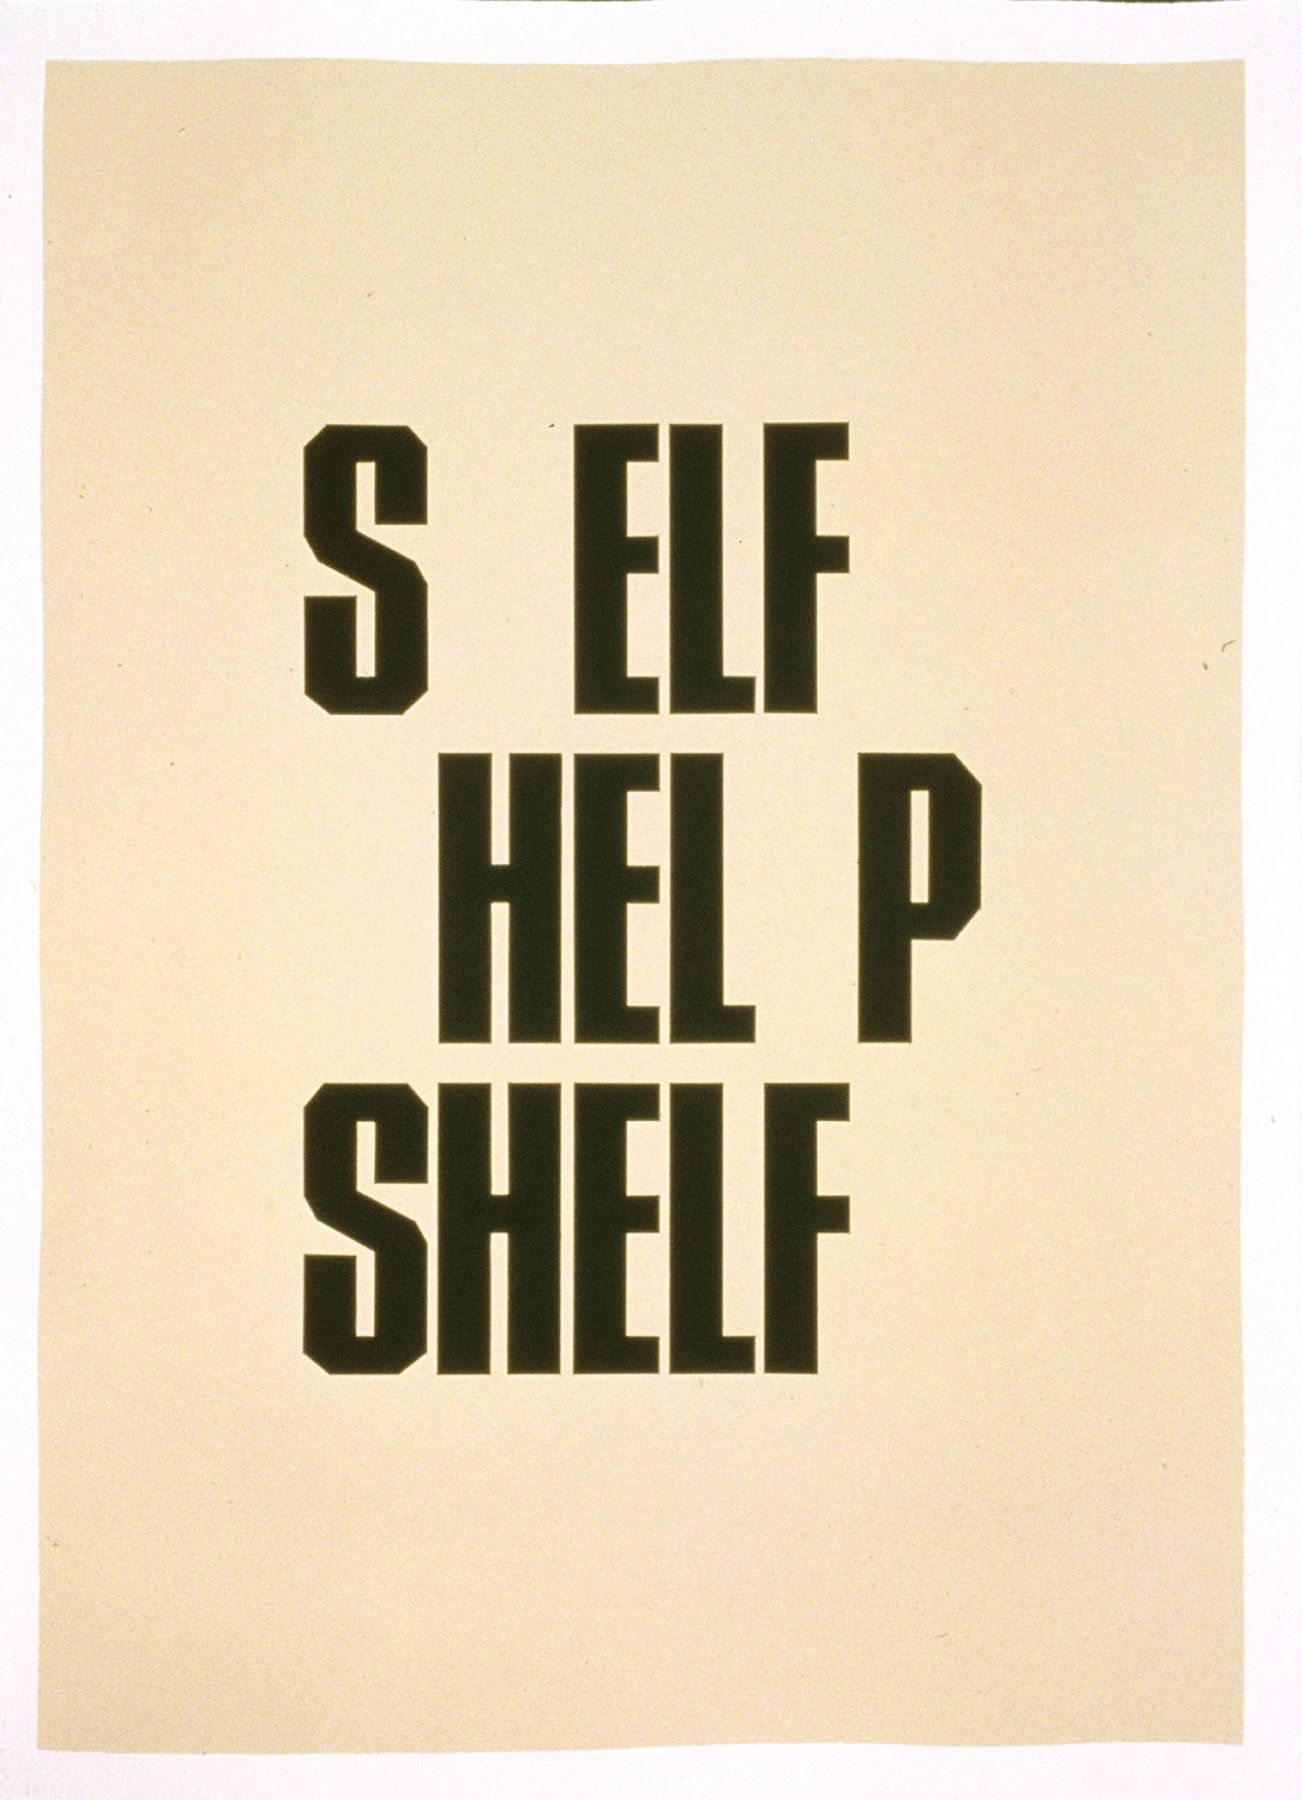 Shelf, 2001, from theRoom series